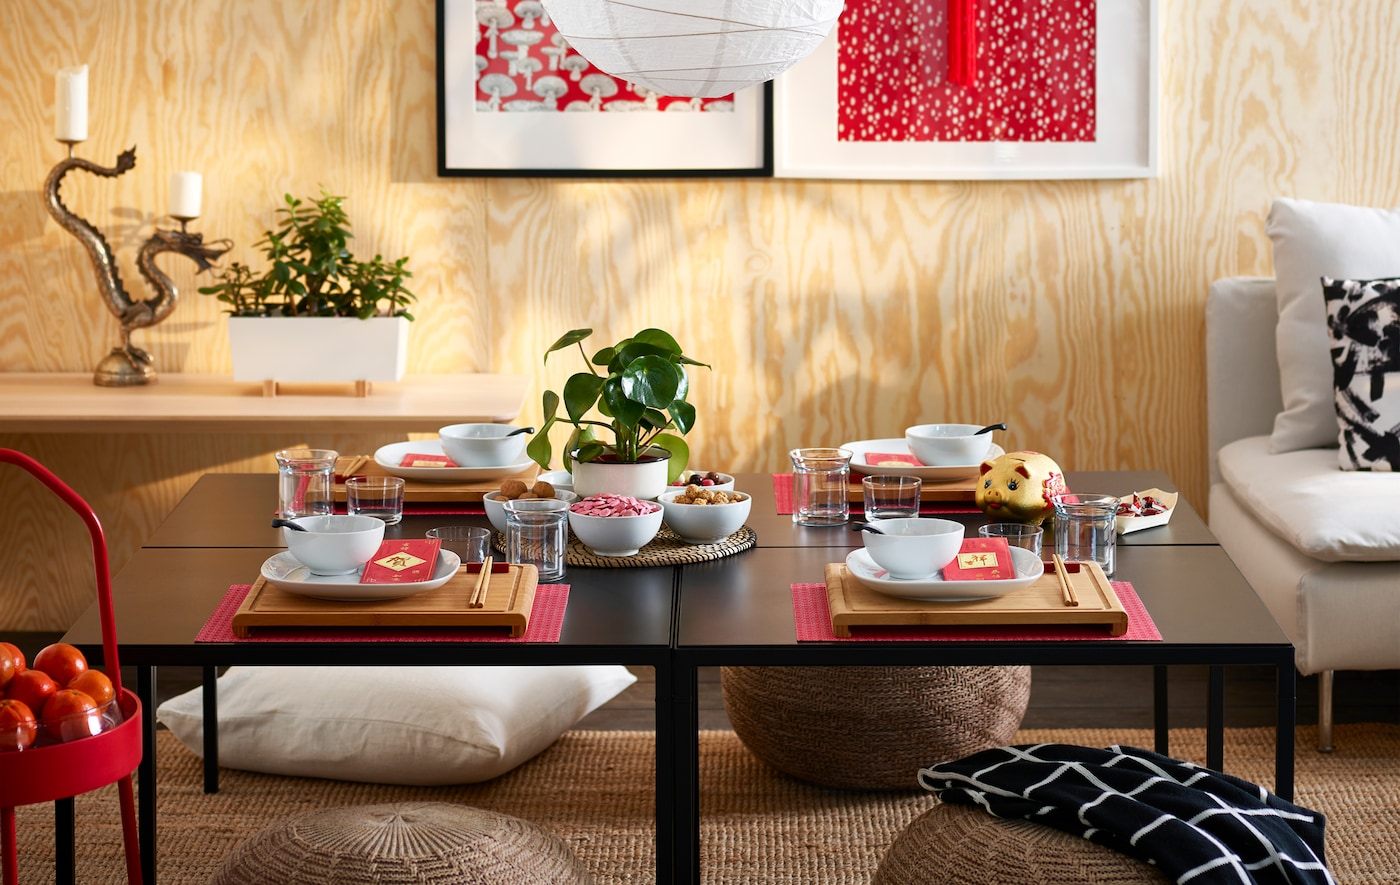 A low black table set with dishware, chopsticks, and drinking glasses in a room with a sofa and a paper lamp hanging above.